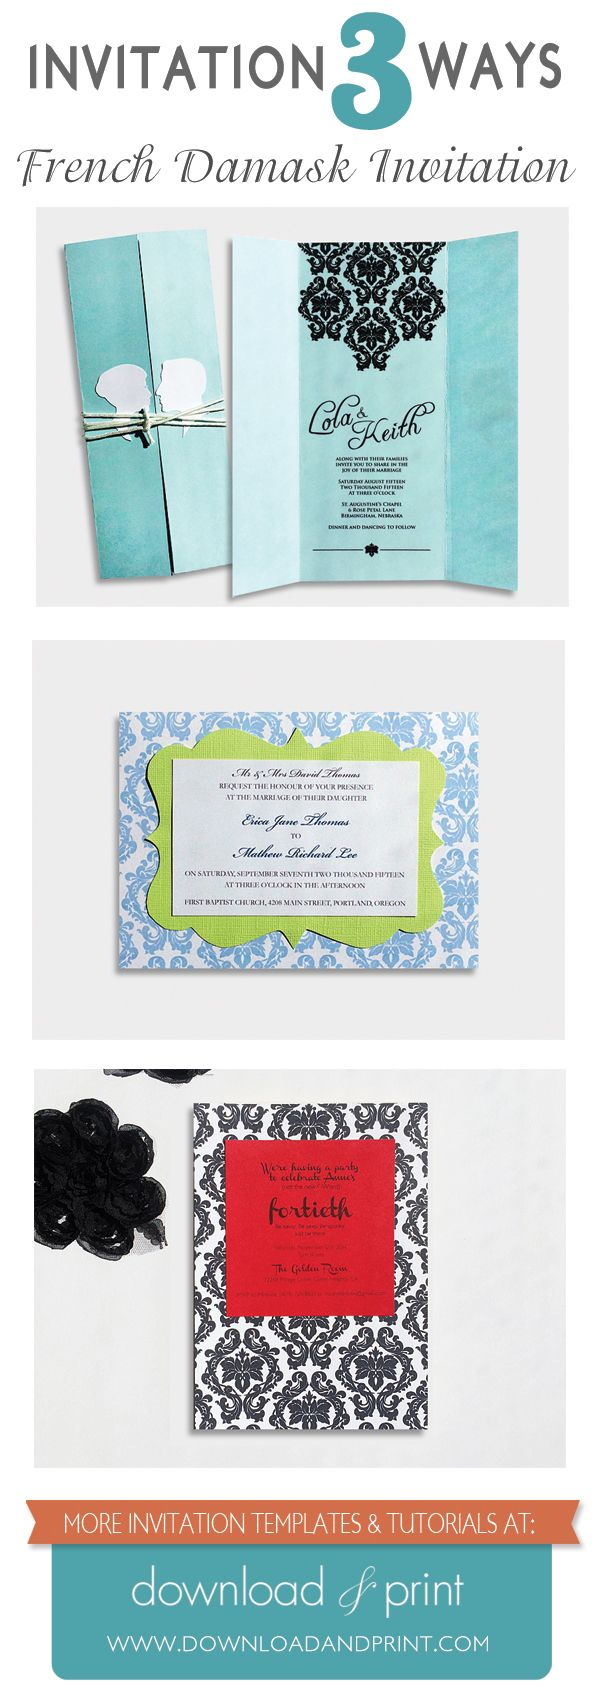 Diy Damask Party Invitation Printable From Downloadandprint Use